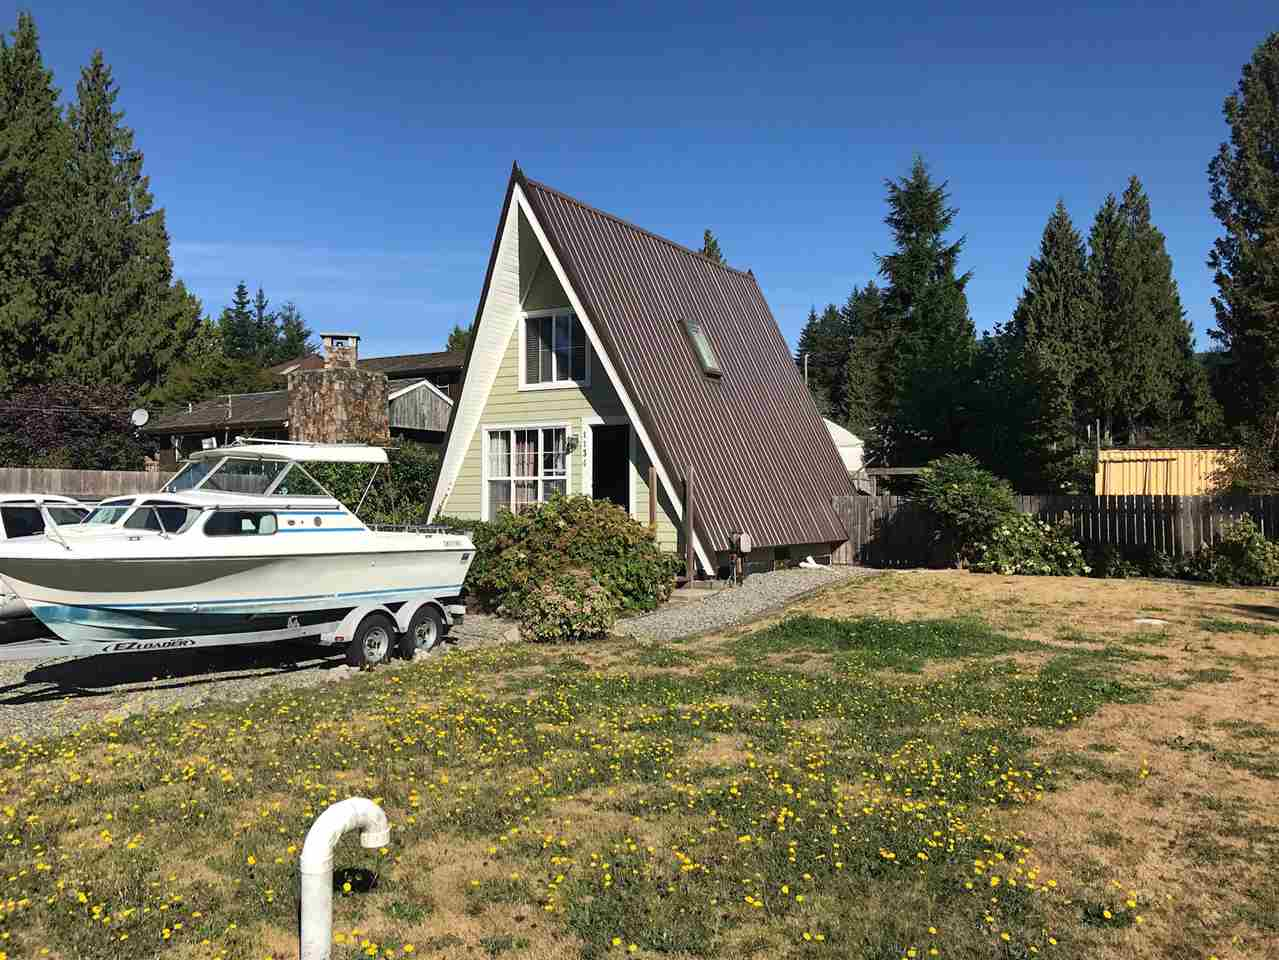 Main Photo: 1134 CHASTER Road in Gibsons: Gibsons & Area House for sale (Sunshine Coast)  : MLS®# R2205007